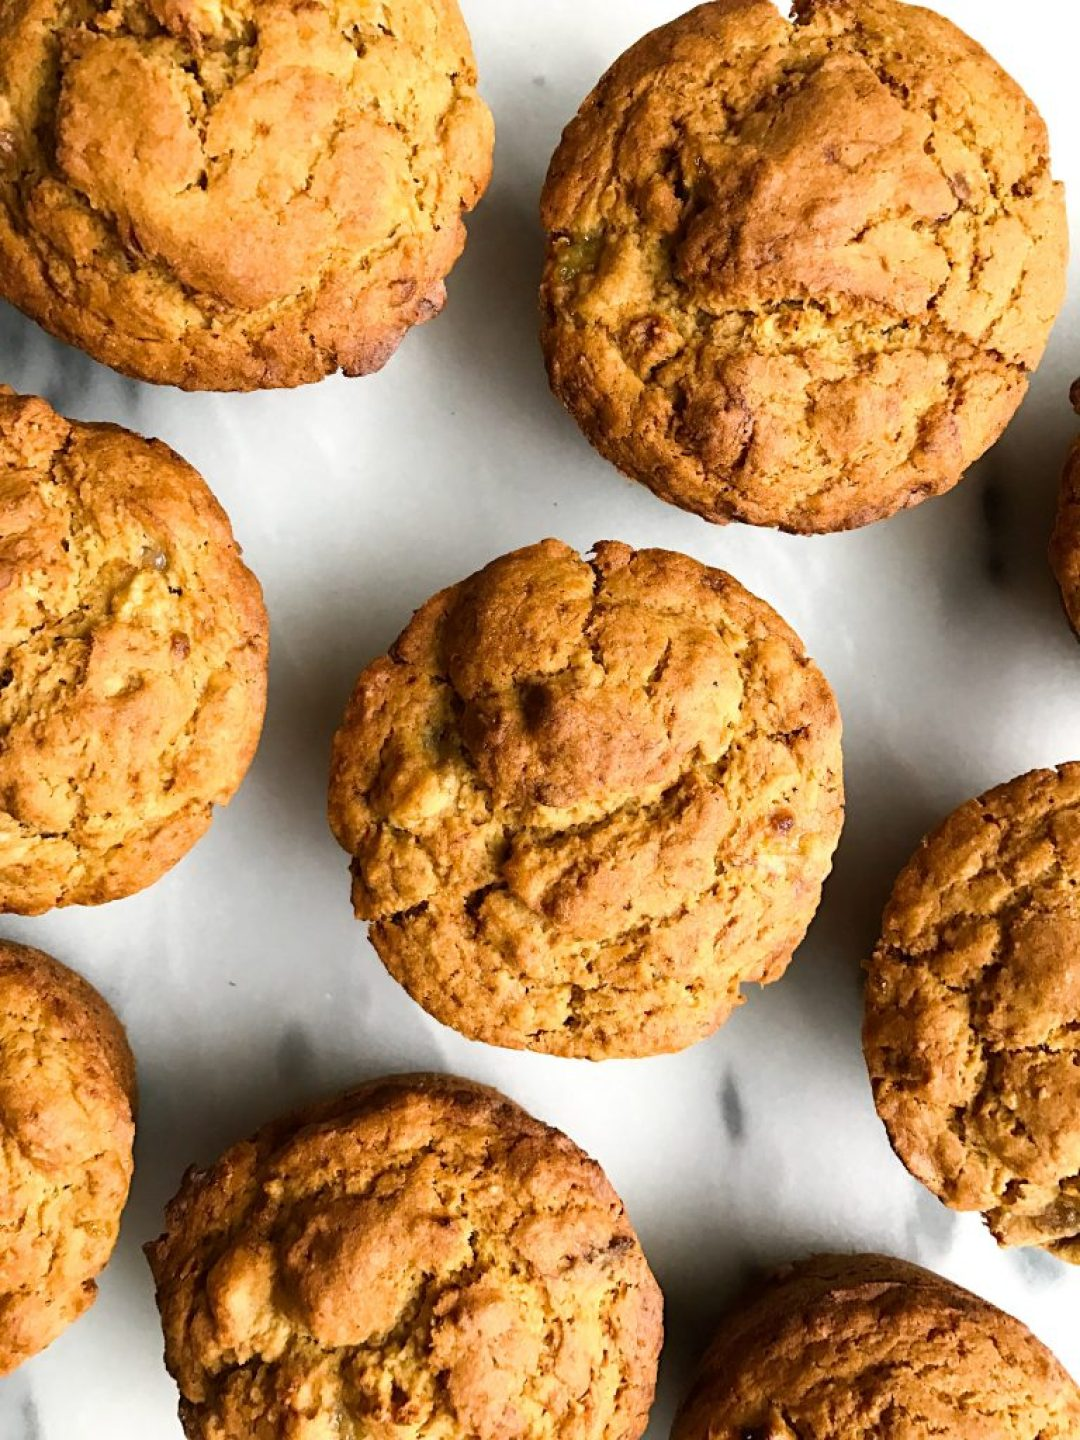 Healthy Bakery Style Banana Spice Muffins that are gluten-free and perfect for a breakfast treat!